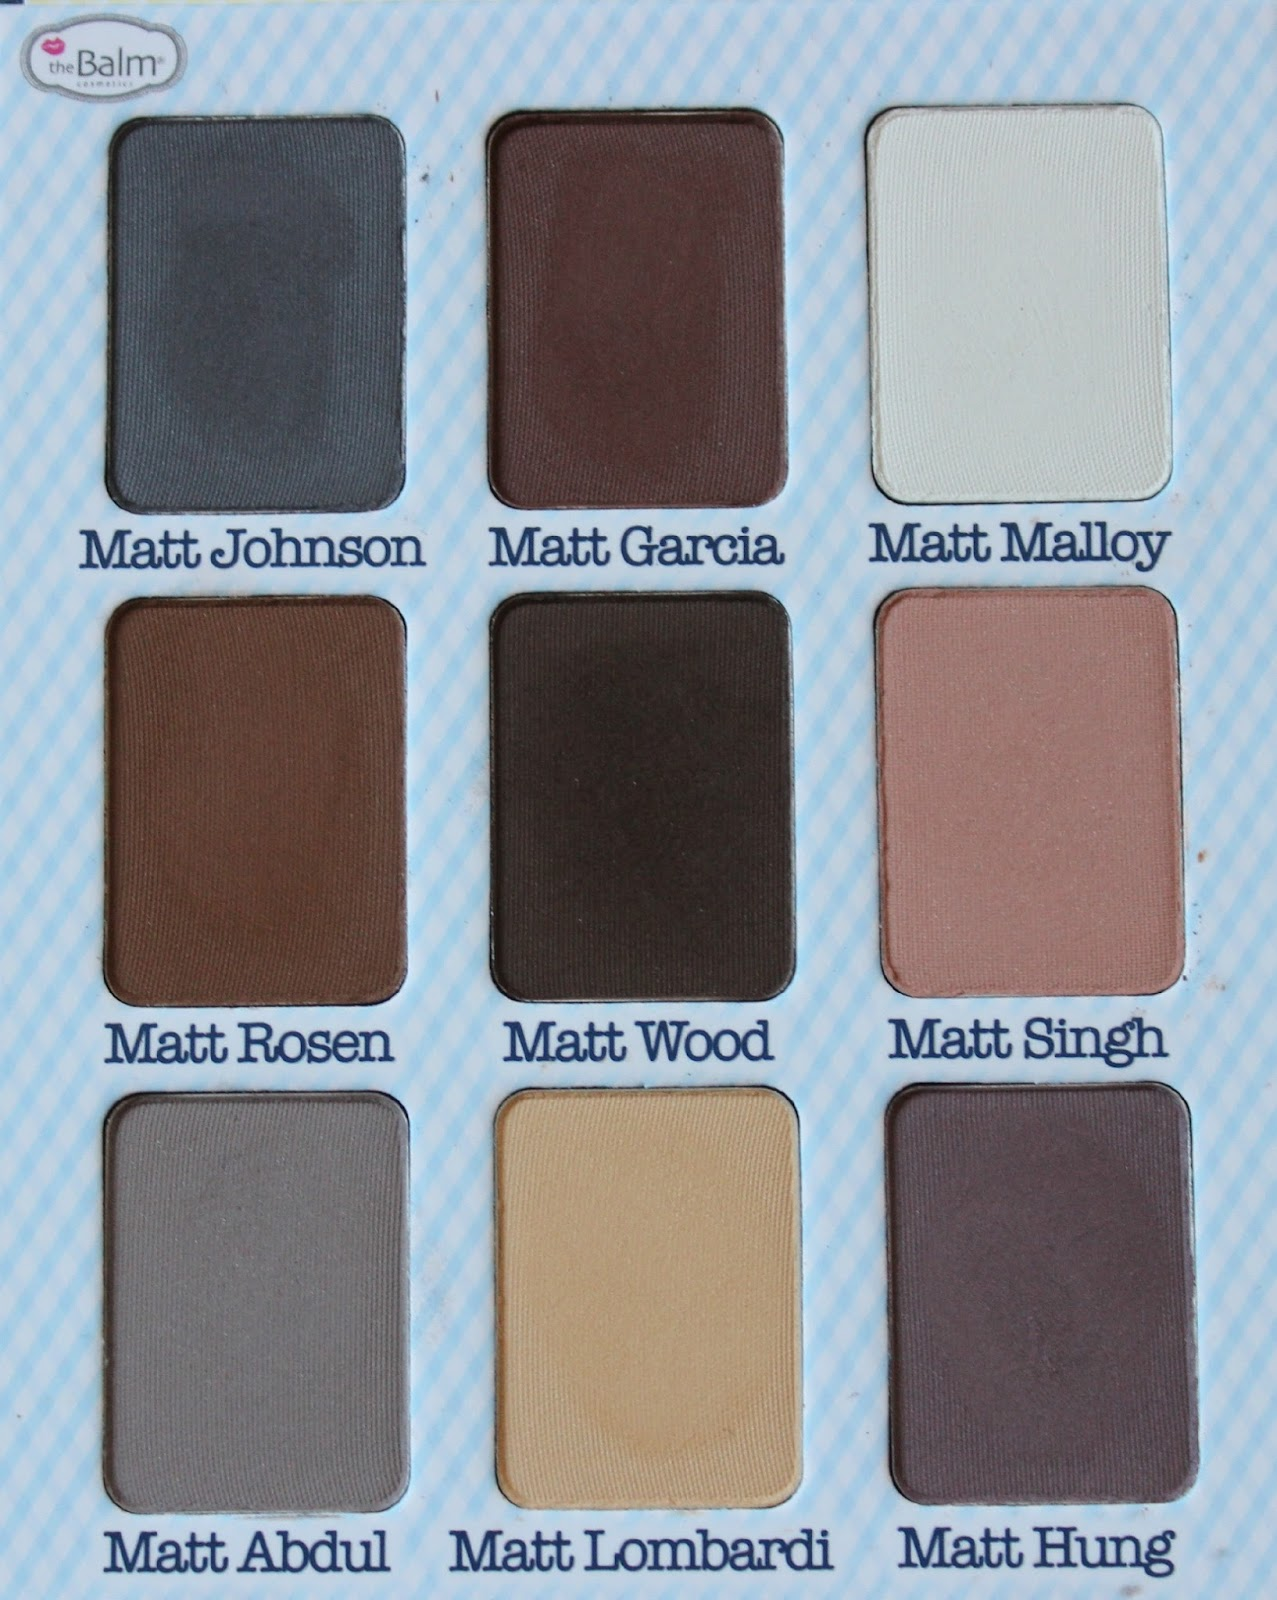 A picture of theBalm Meet Matt(e) Nude